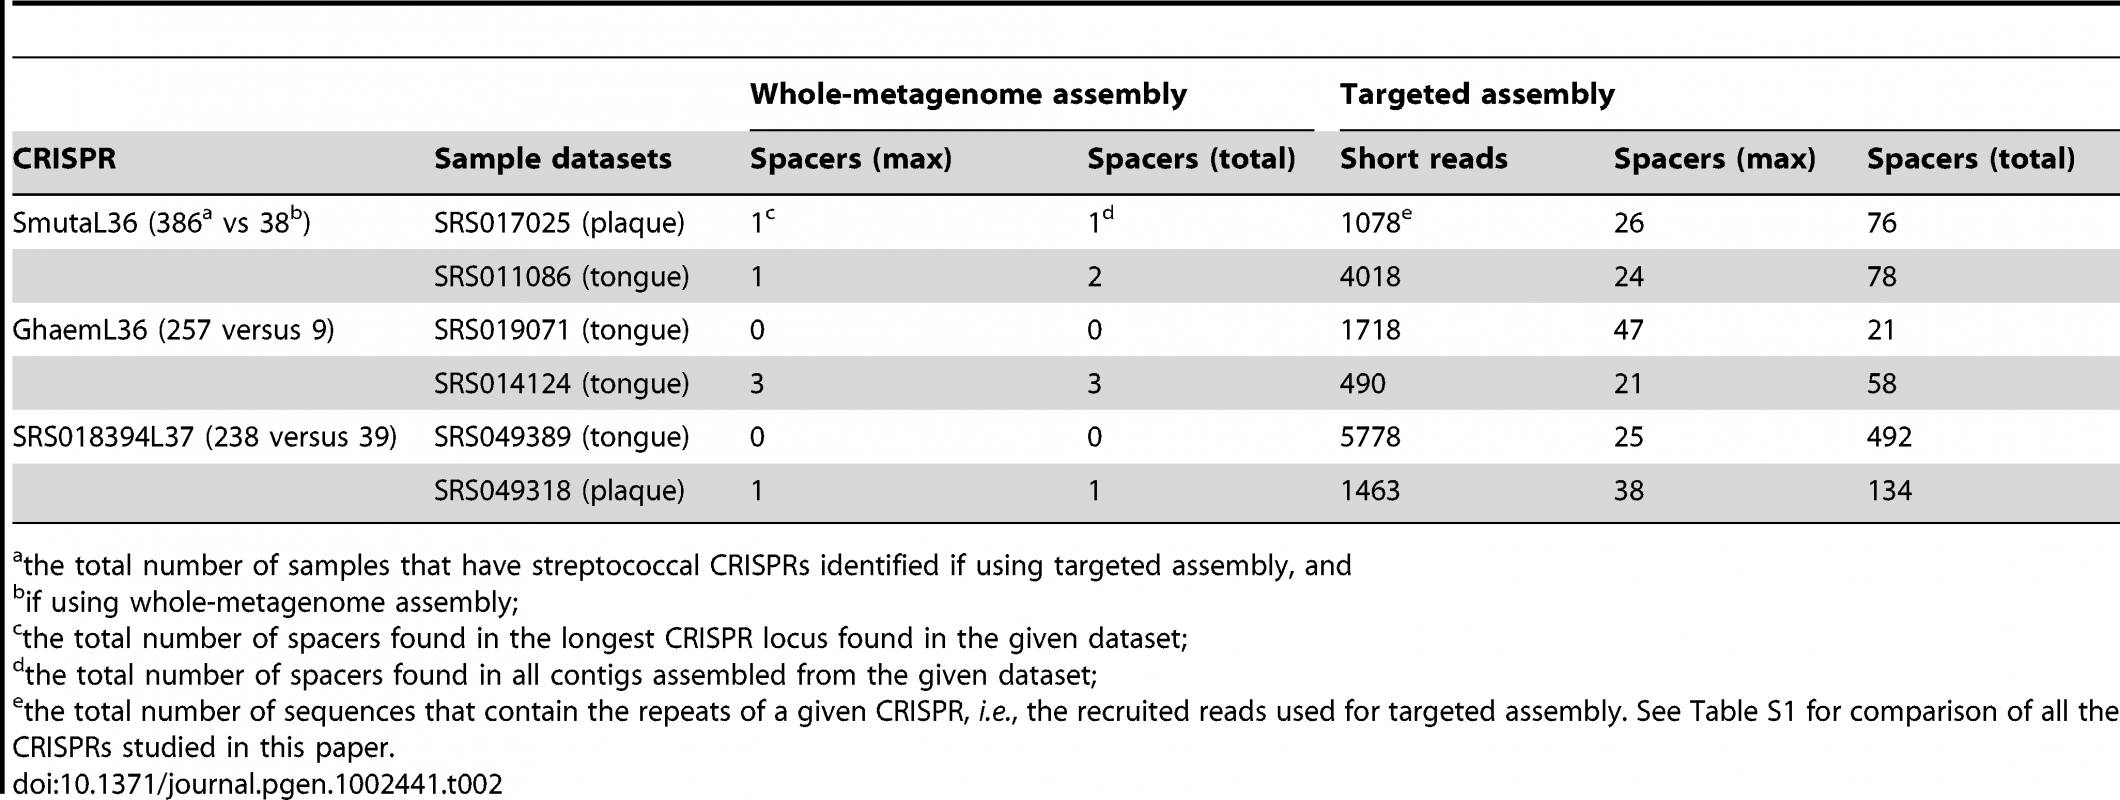 Comparison of CRISPR identification using whole-metagenome assembly and targeted assembly.